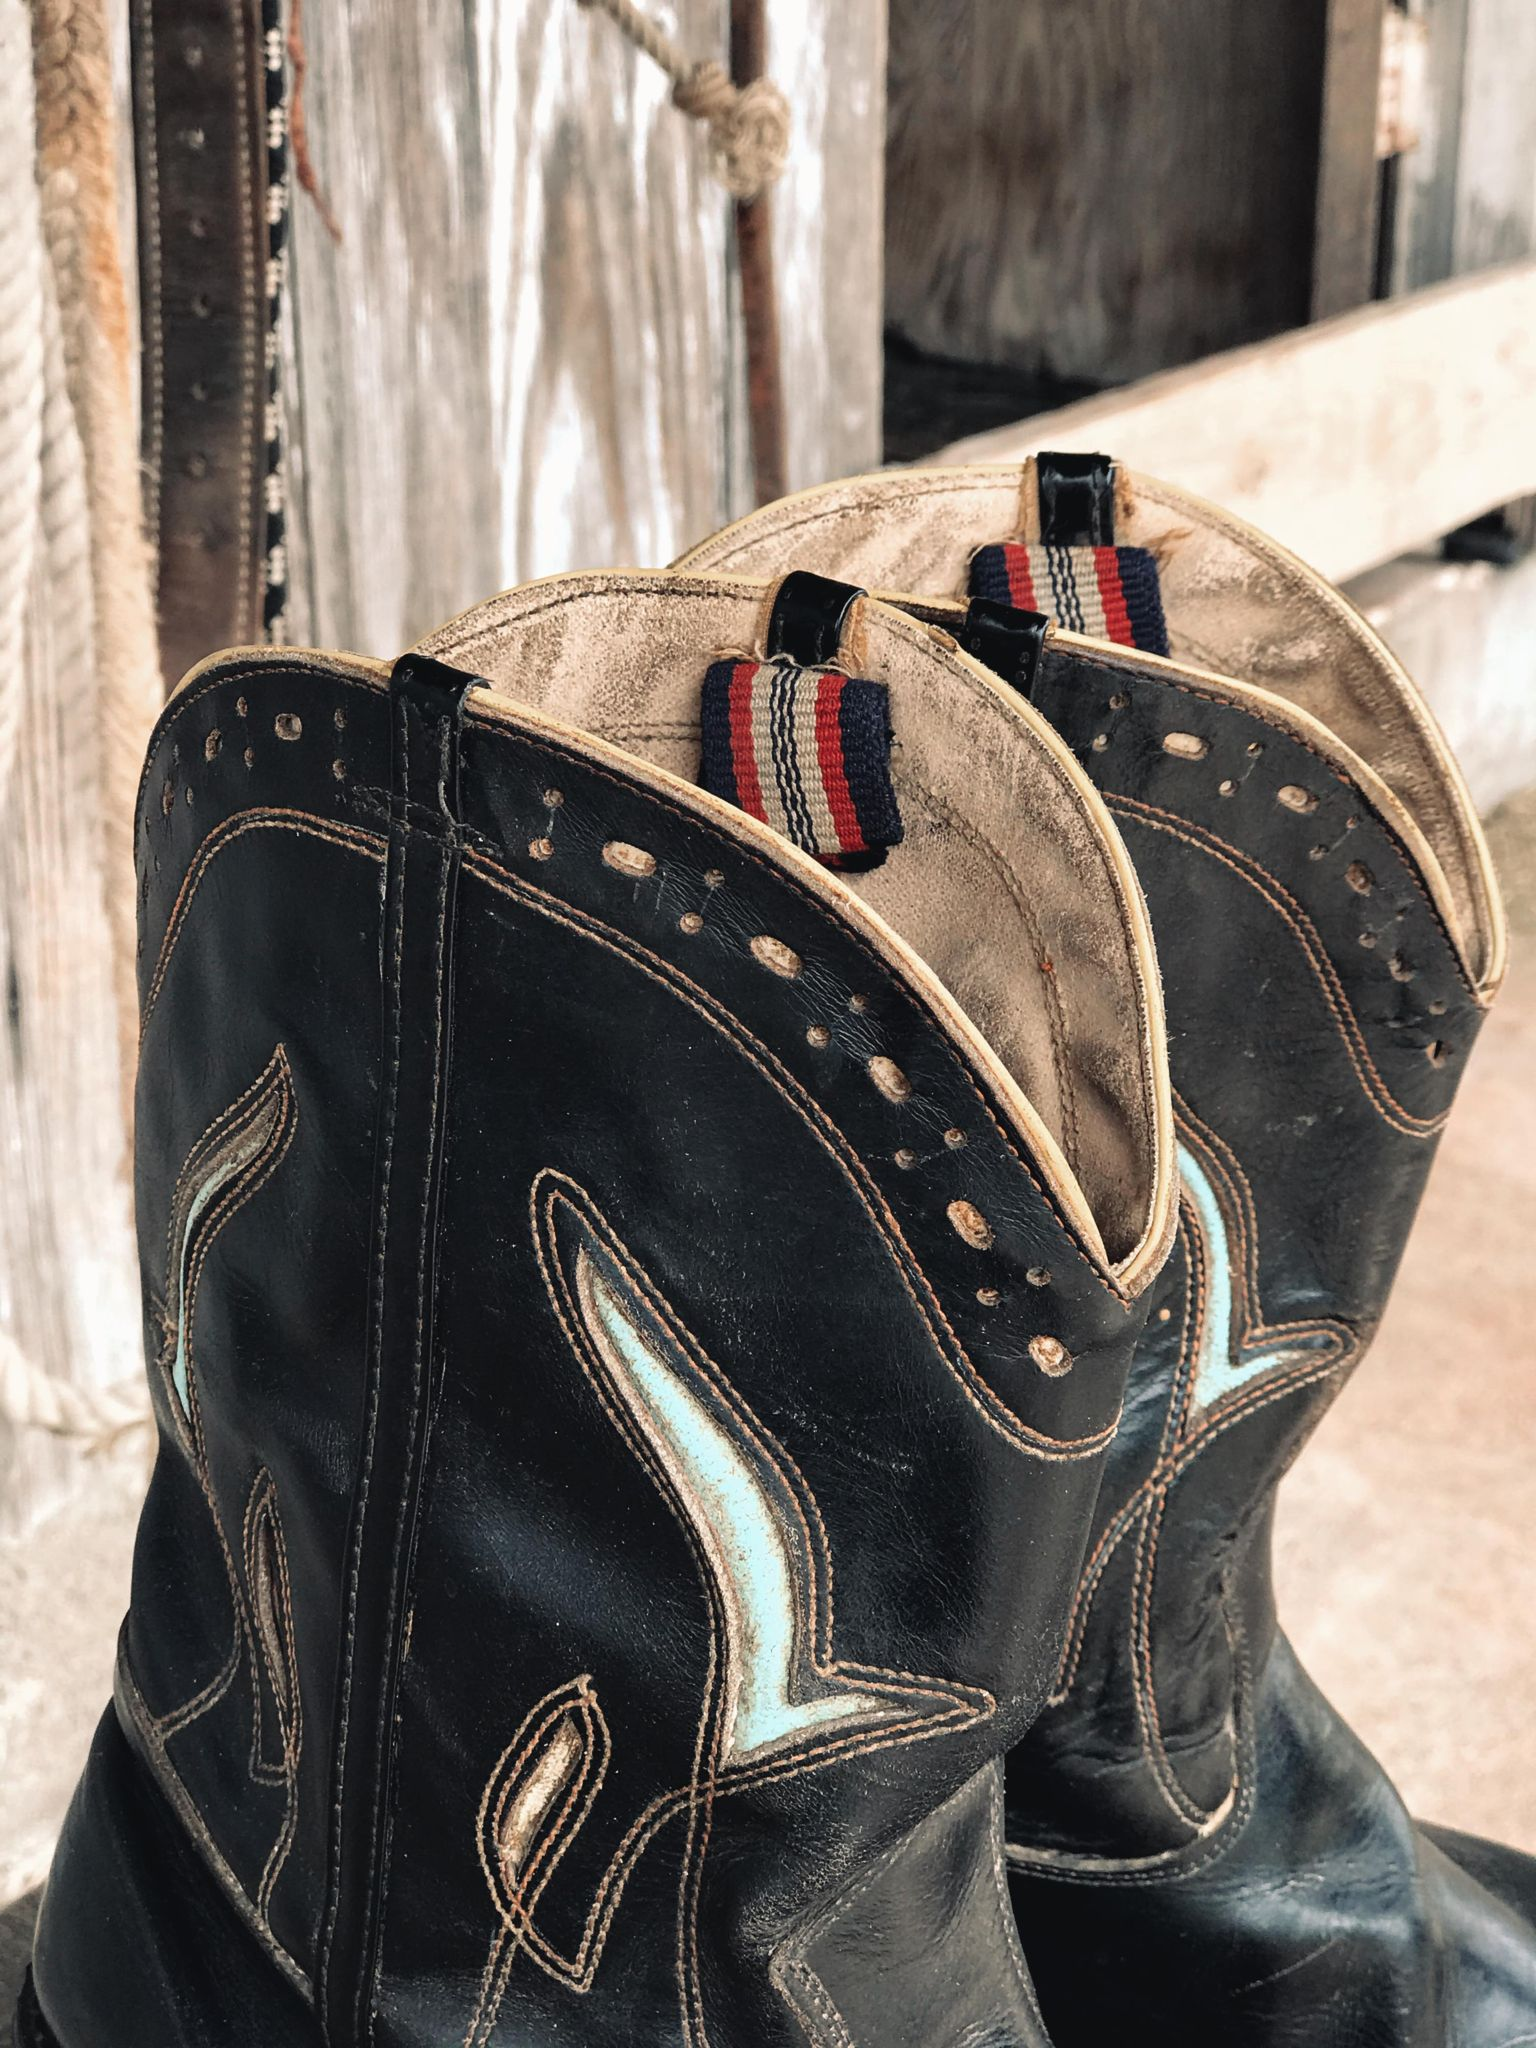 Vintage Cowboy Boots from the 1950's